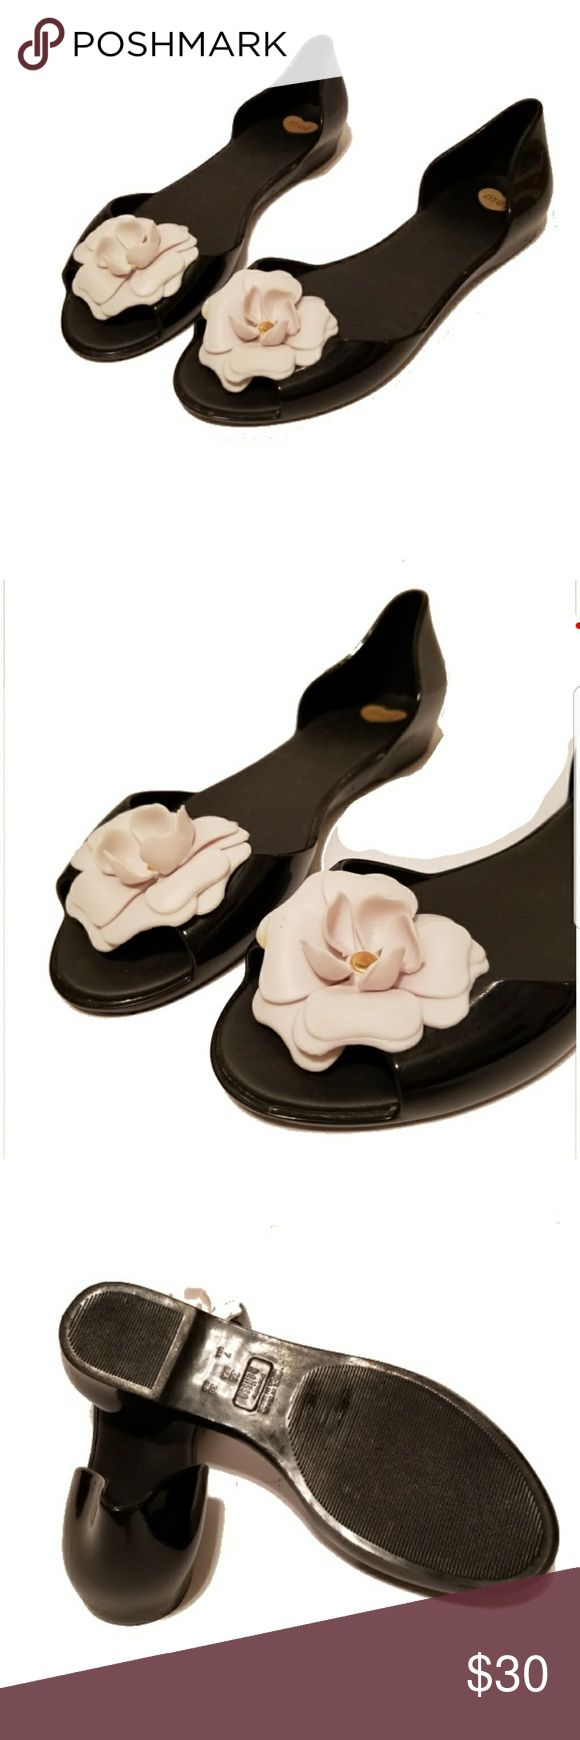 GUC Mel melissa Jelly Ballet Flats Flower Floral Black Mel by Melissa  Floral bow accent Gold Accent in flower has some signs of wear. Open Toe/Peep Toe Sz. 7 Flats Mel by Melissa Shoes Flats & Loafers